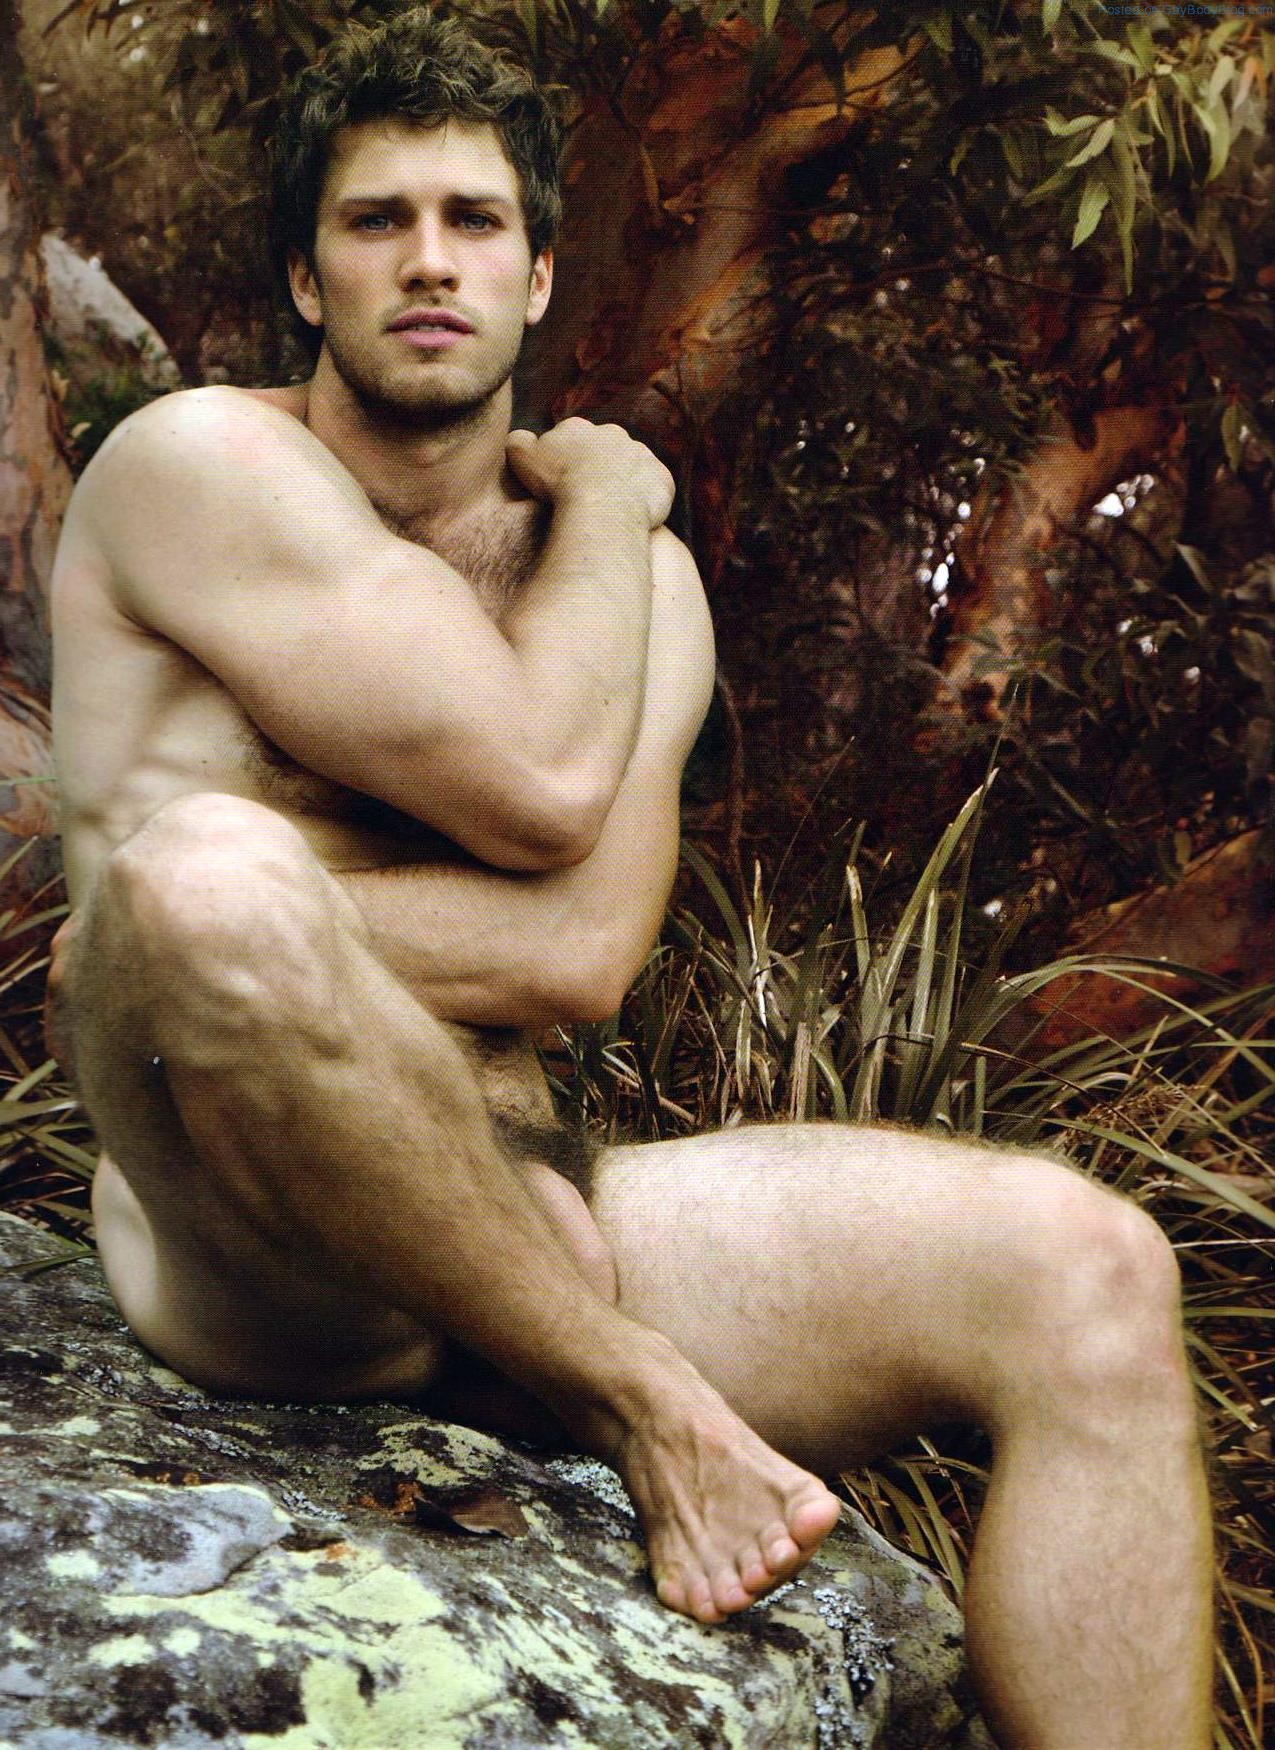 Pictures of hot naked guys